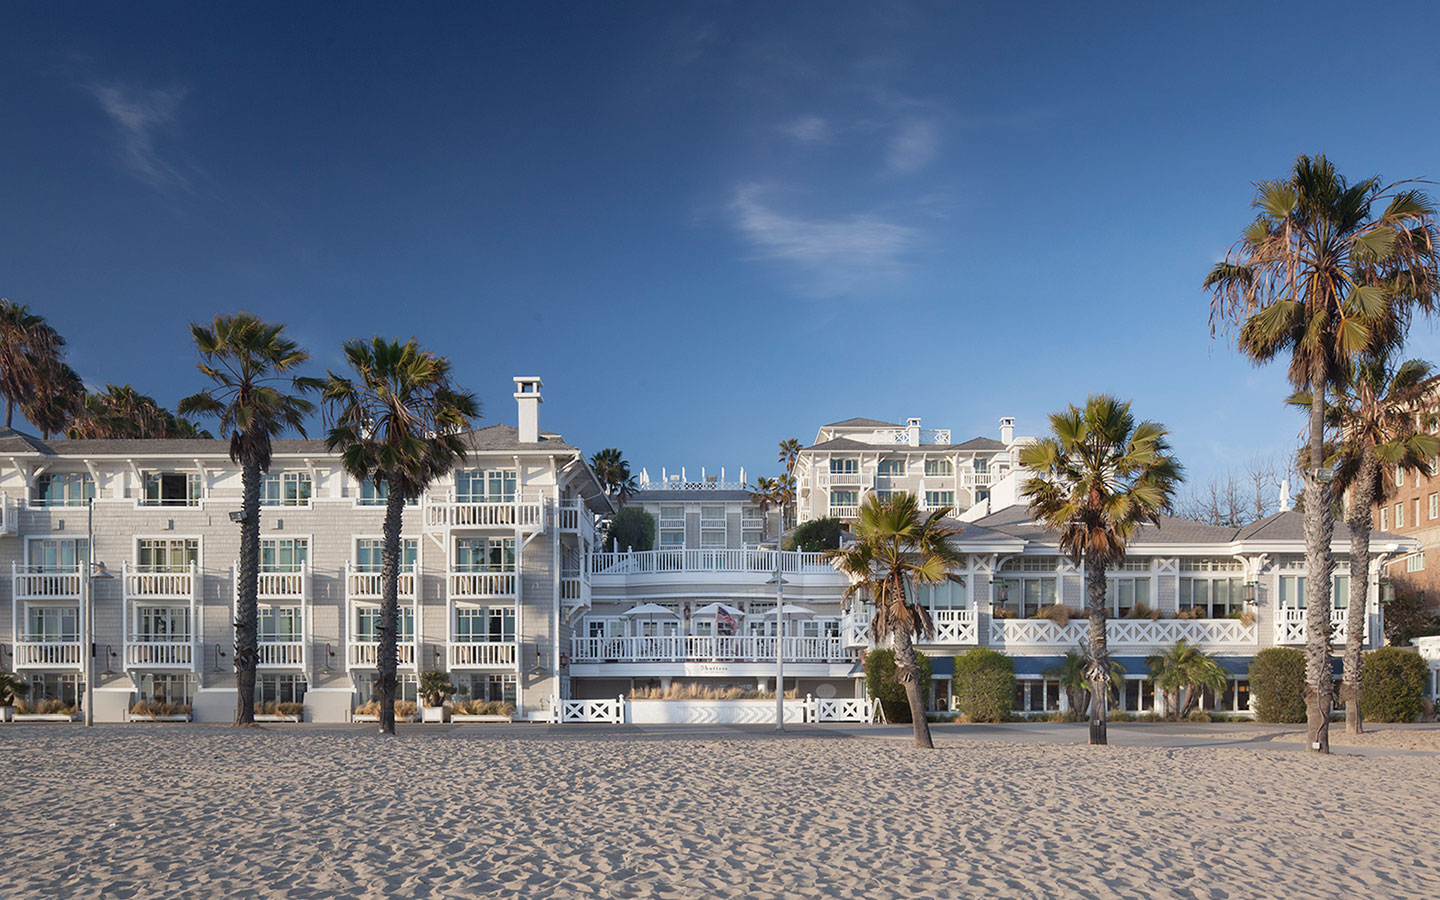 Santa Monica Hotel Luxury Beach The Iconic Shutters On